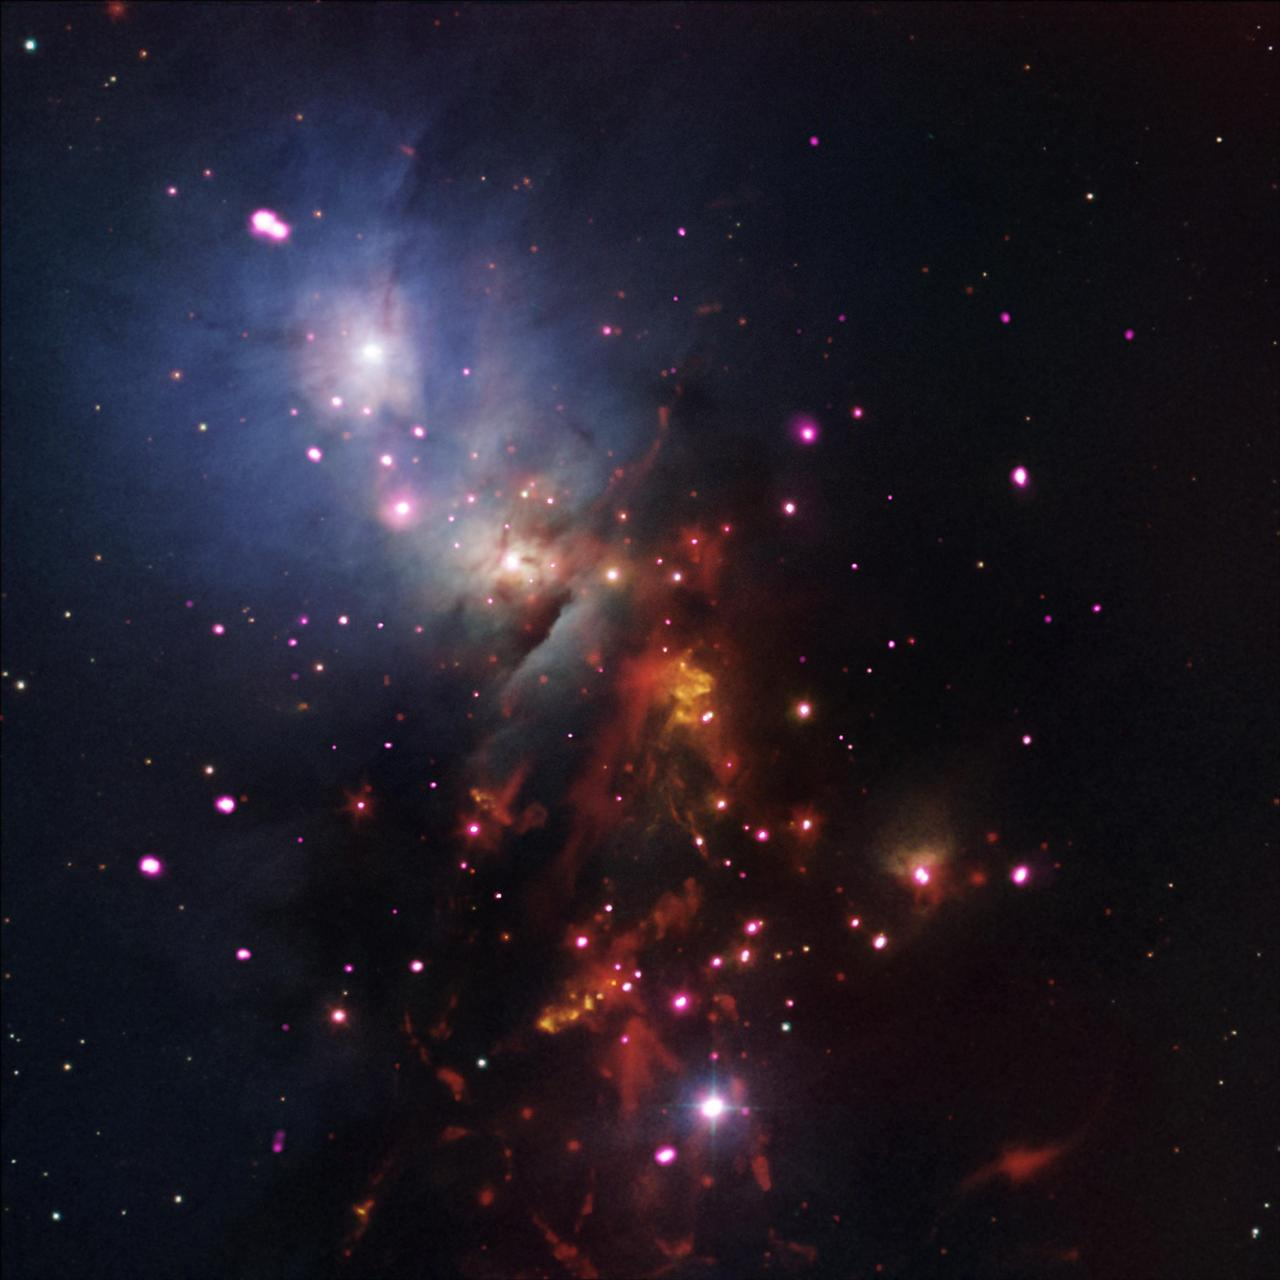 This image, containing data from NASA Spitzer and Chandra space telescopes, shows a cluster of young stars expected to burn for billions of years.